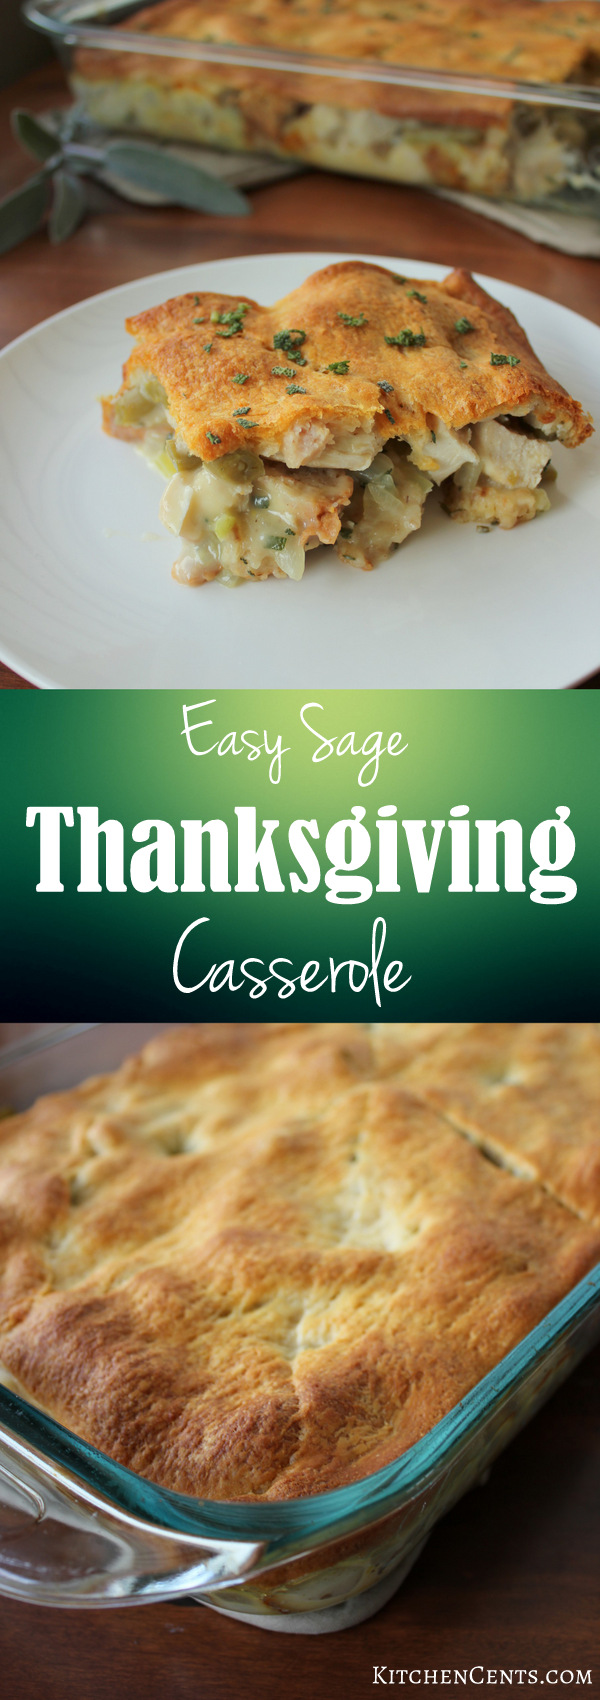 Easy Sage Thanksgiving Casserole | KitchenCents.com